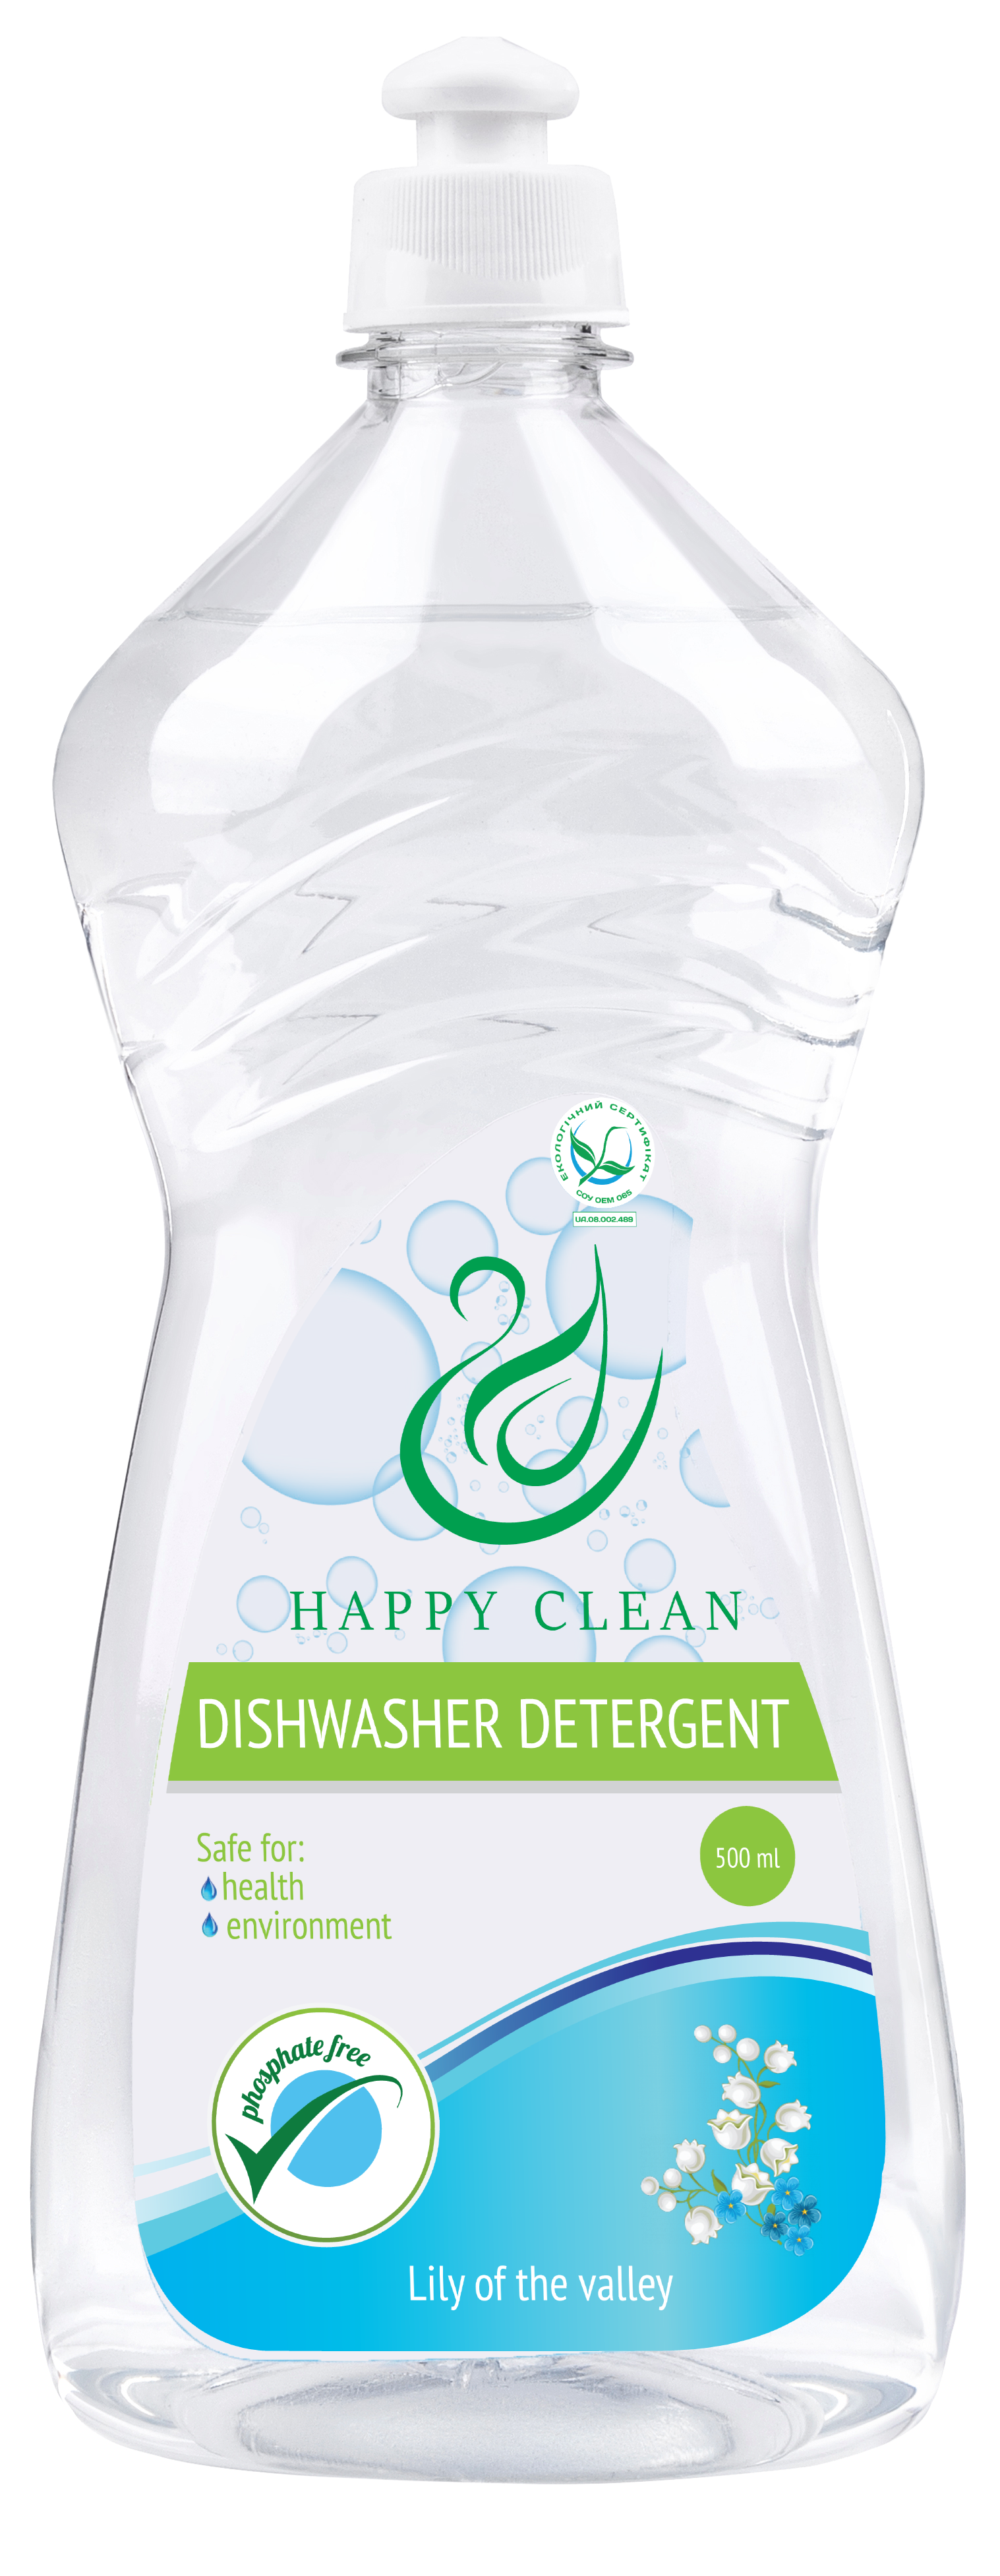 Dishwashing liquid lily of the valley image